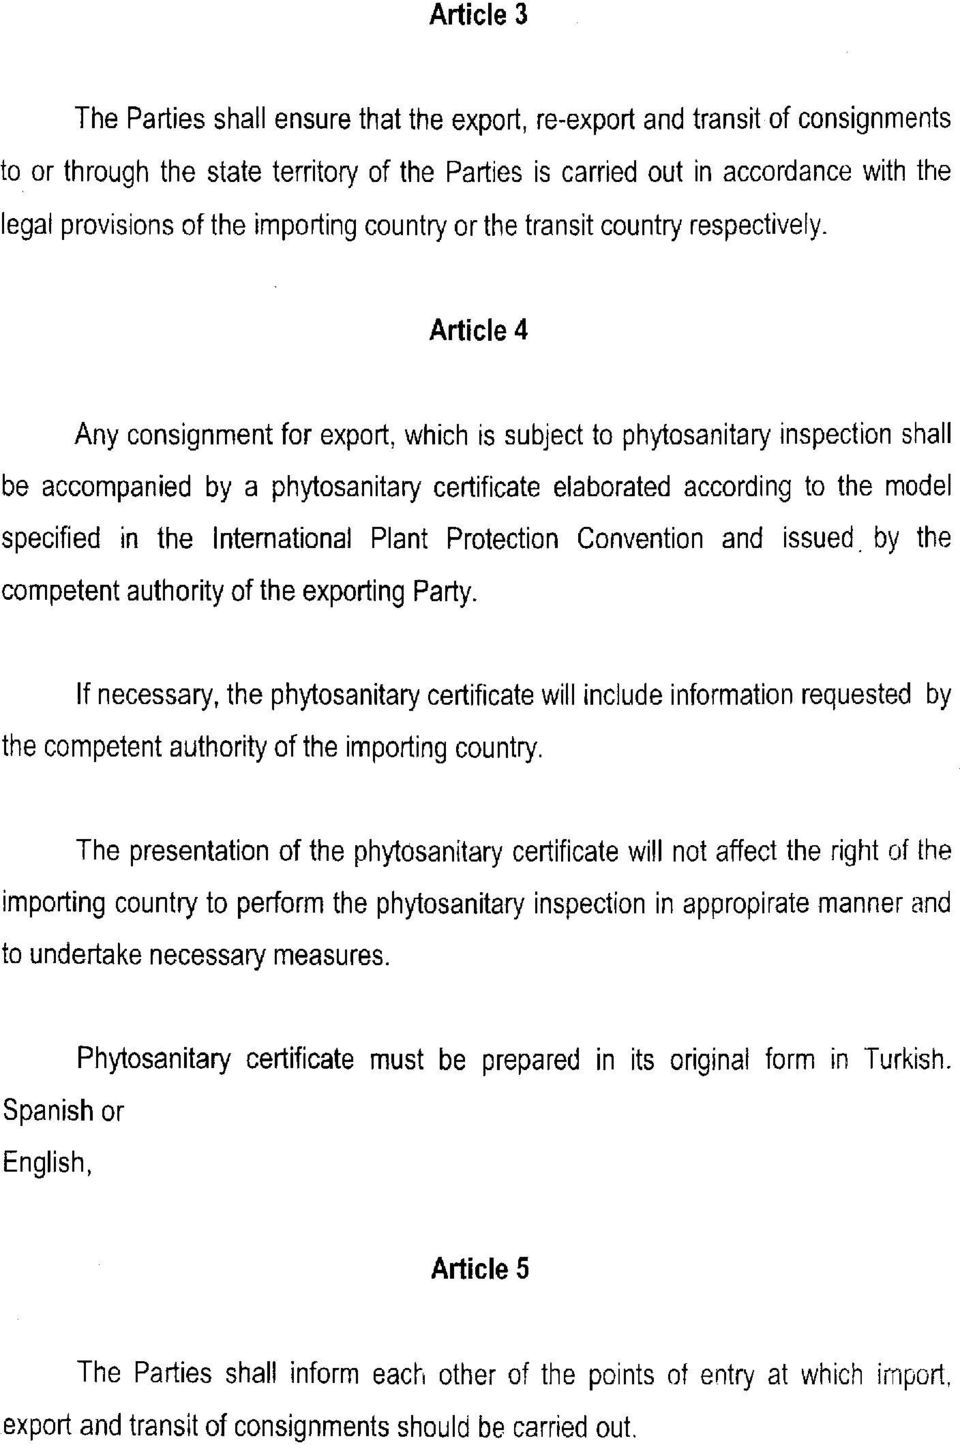 Article 4 Any consignment for export, which is subject to phytosanitary inspection shall be accompanied by a phytosanitary certificate elaborated according to the model specified in the International